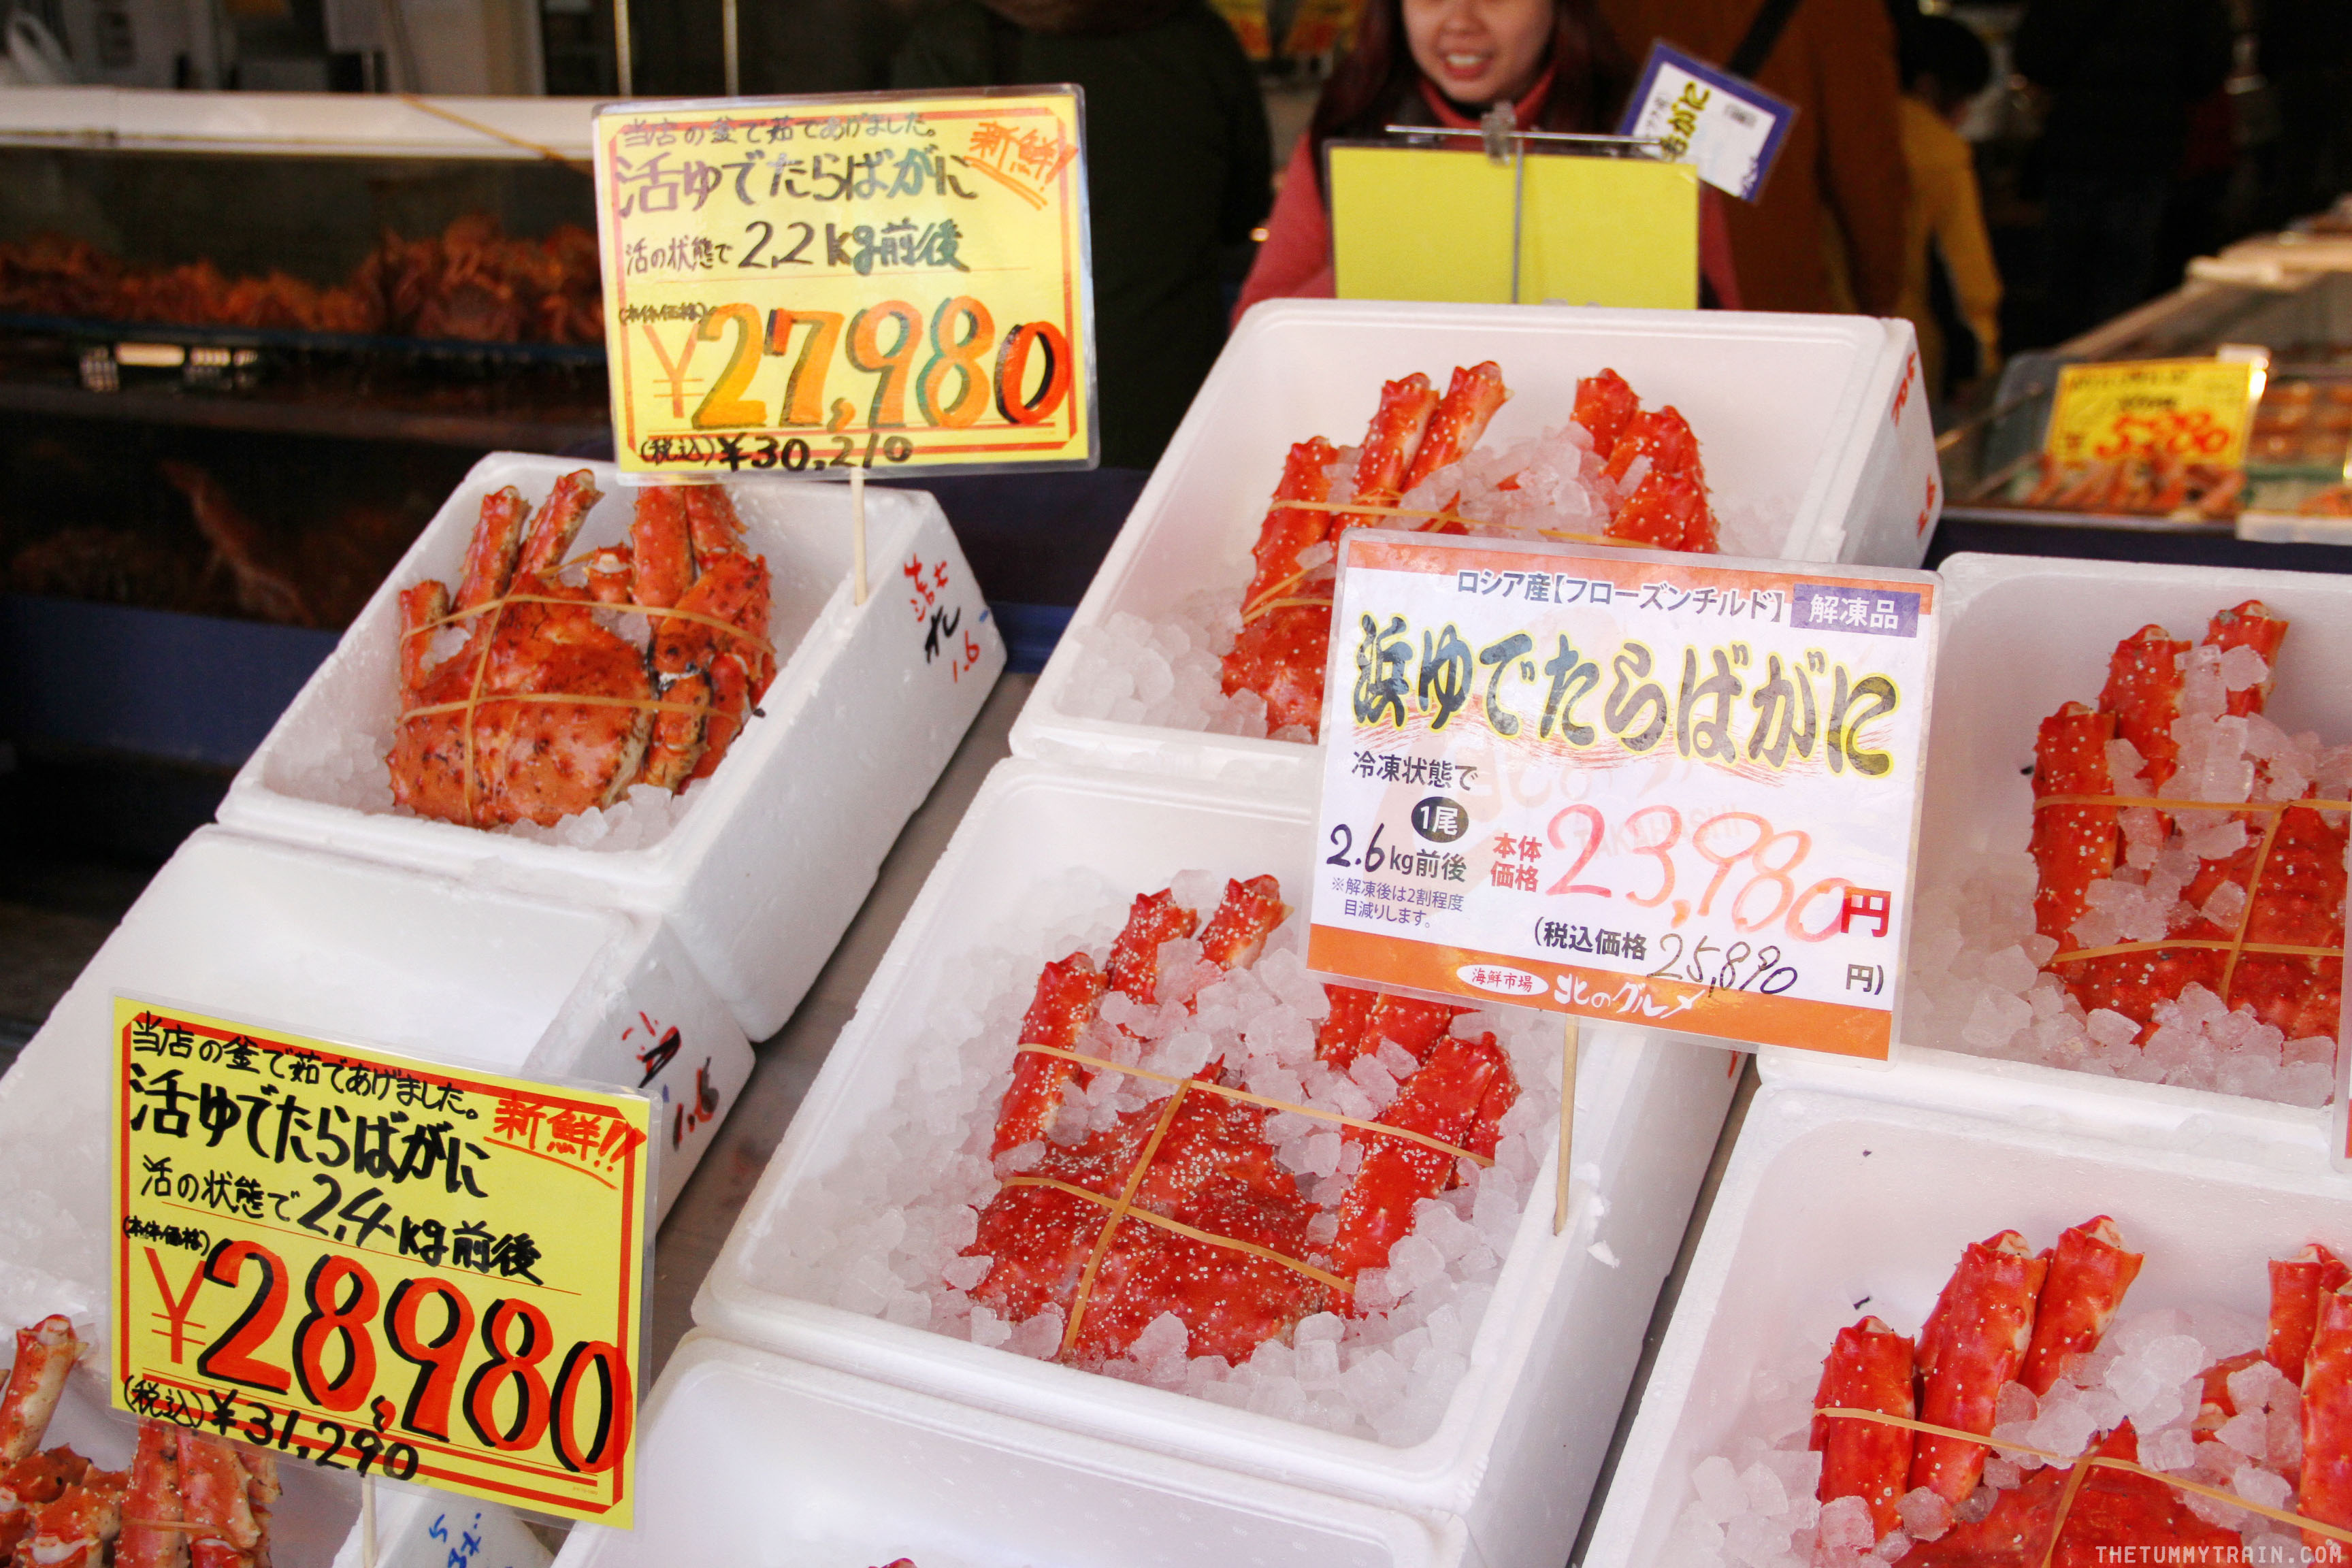 Sapporo Wholesale Market Crabs - Sapporo Travel Diary 2017: A brief visit to the Sapporo Central Wholesale Market